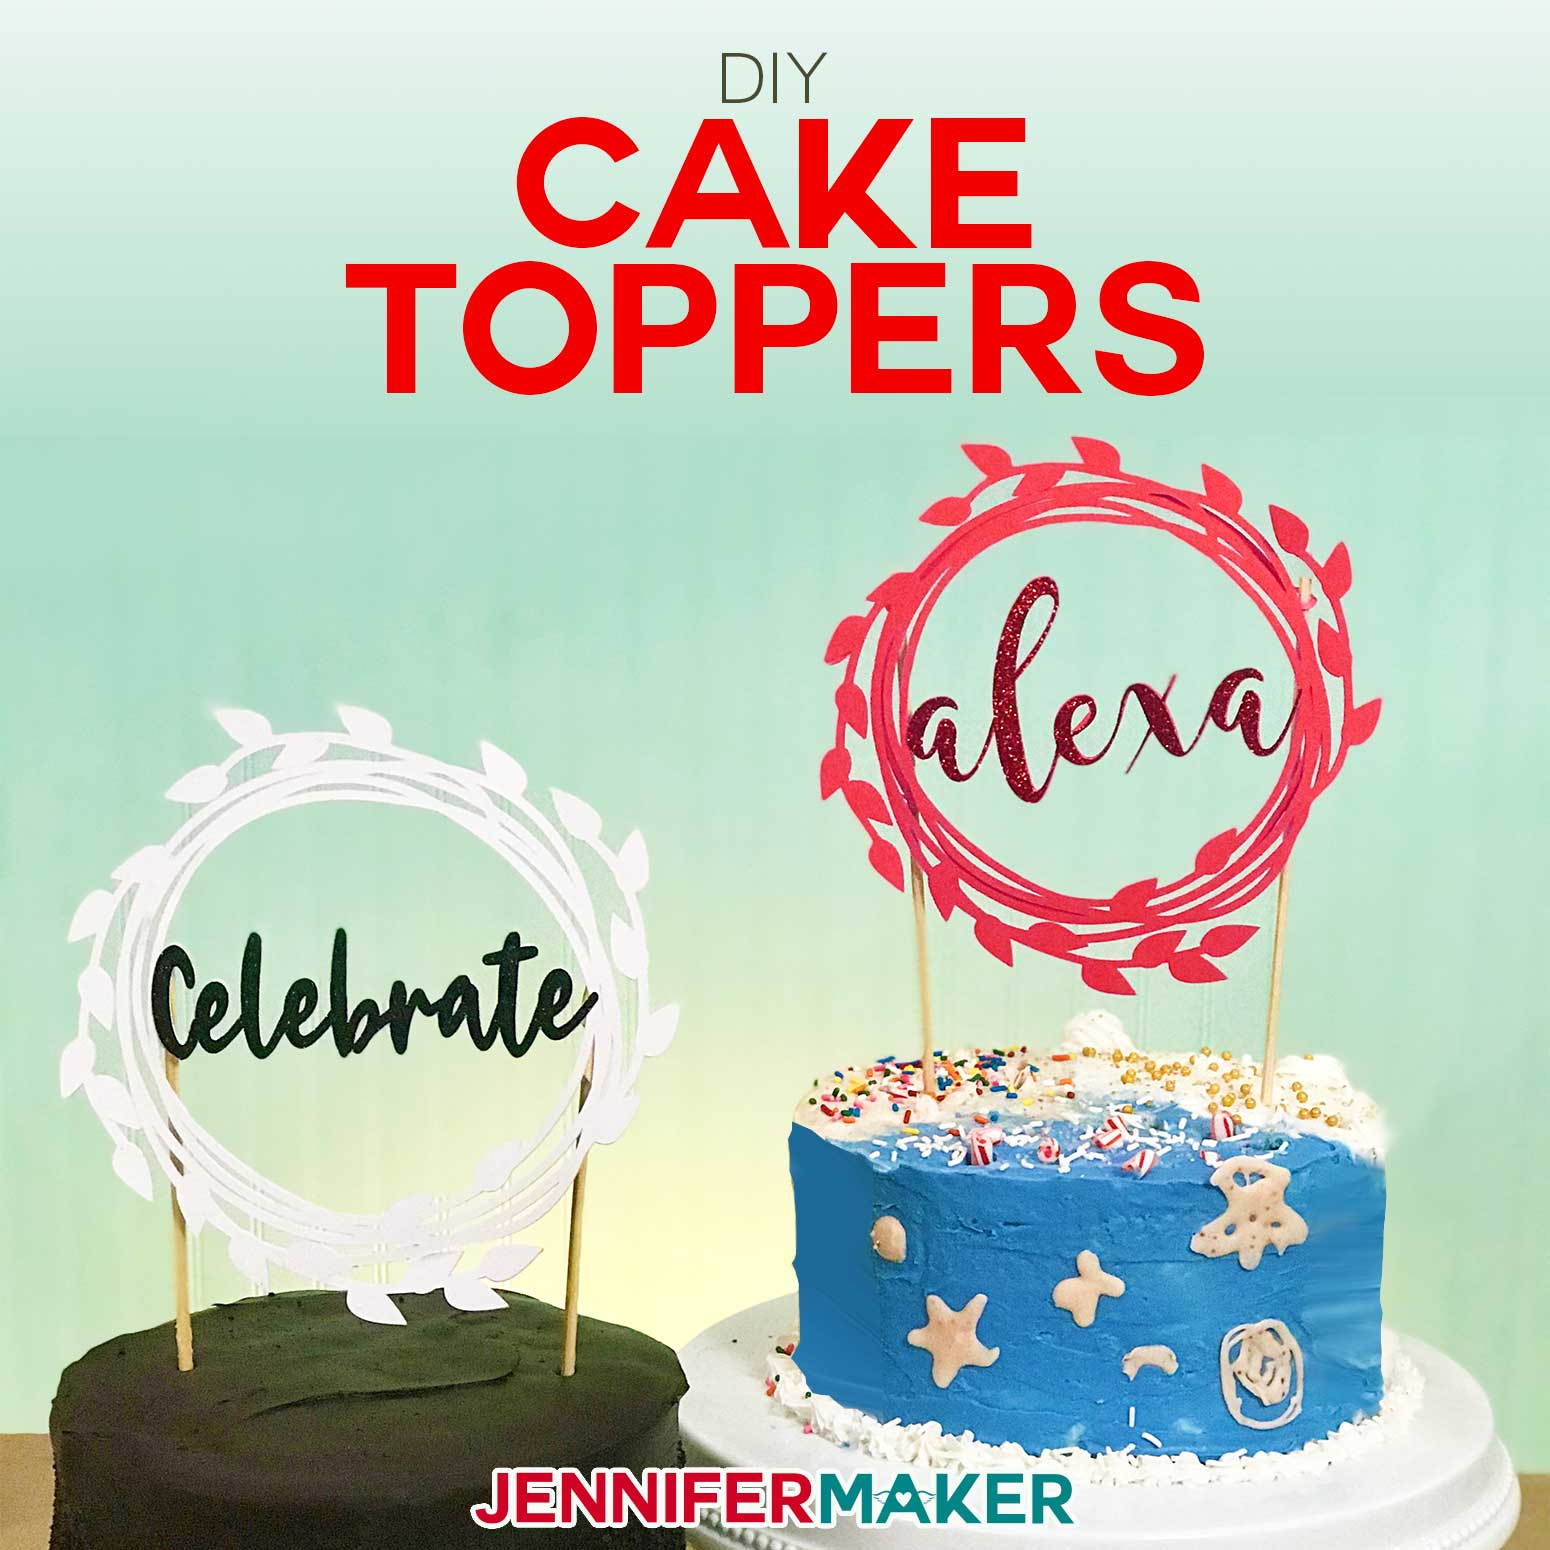 Diy Cake Toppers For Birthday Weddings Customize Your Own Jennifer Maker